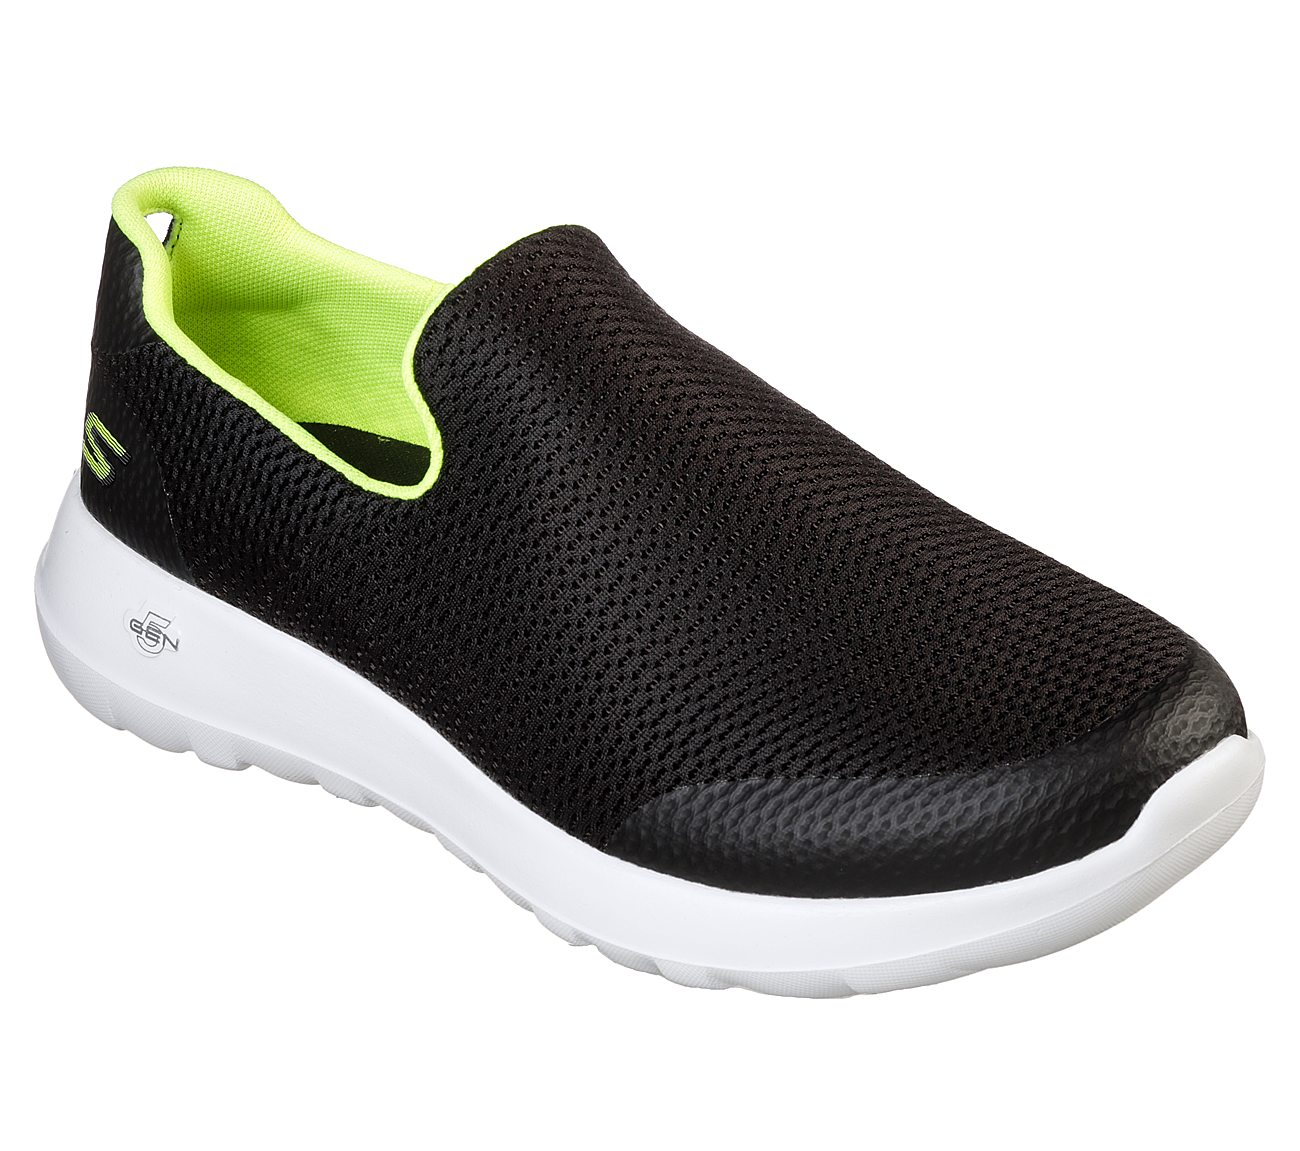 skechers go walk 2 mens mesh slip-on shoes